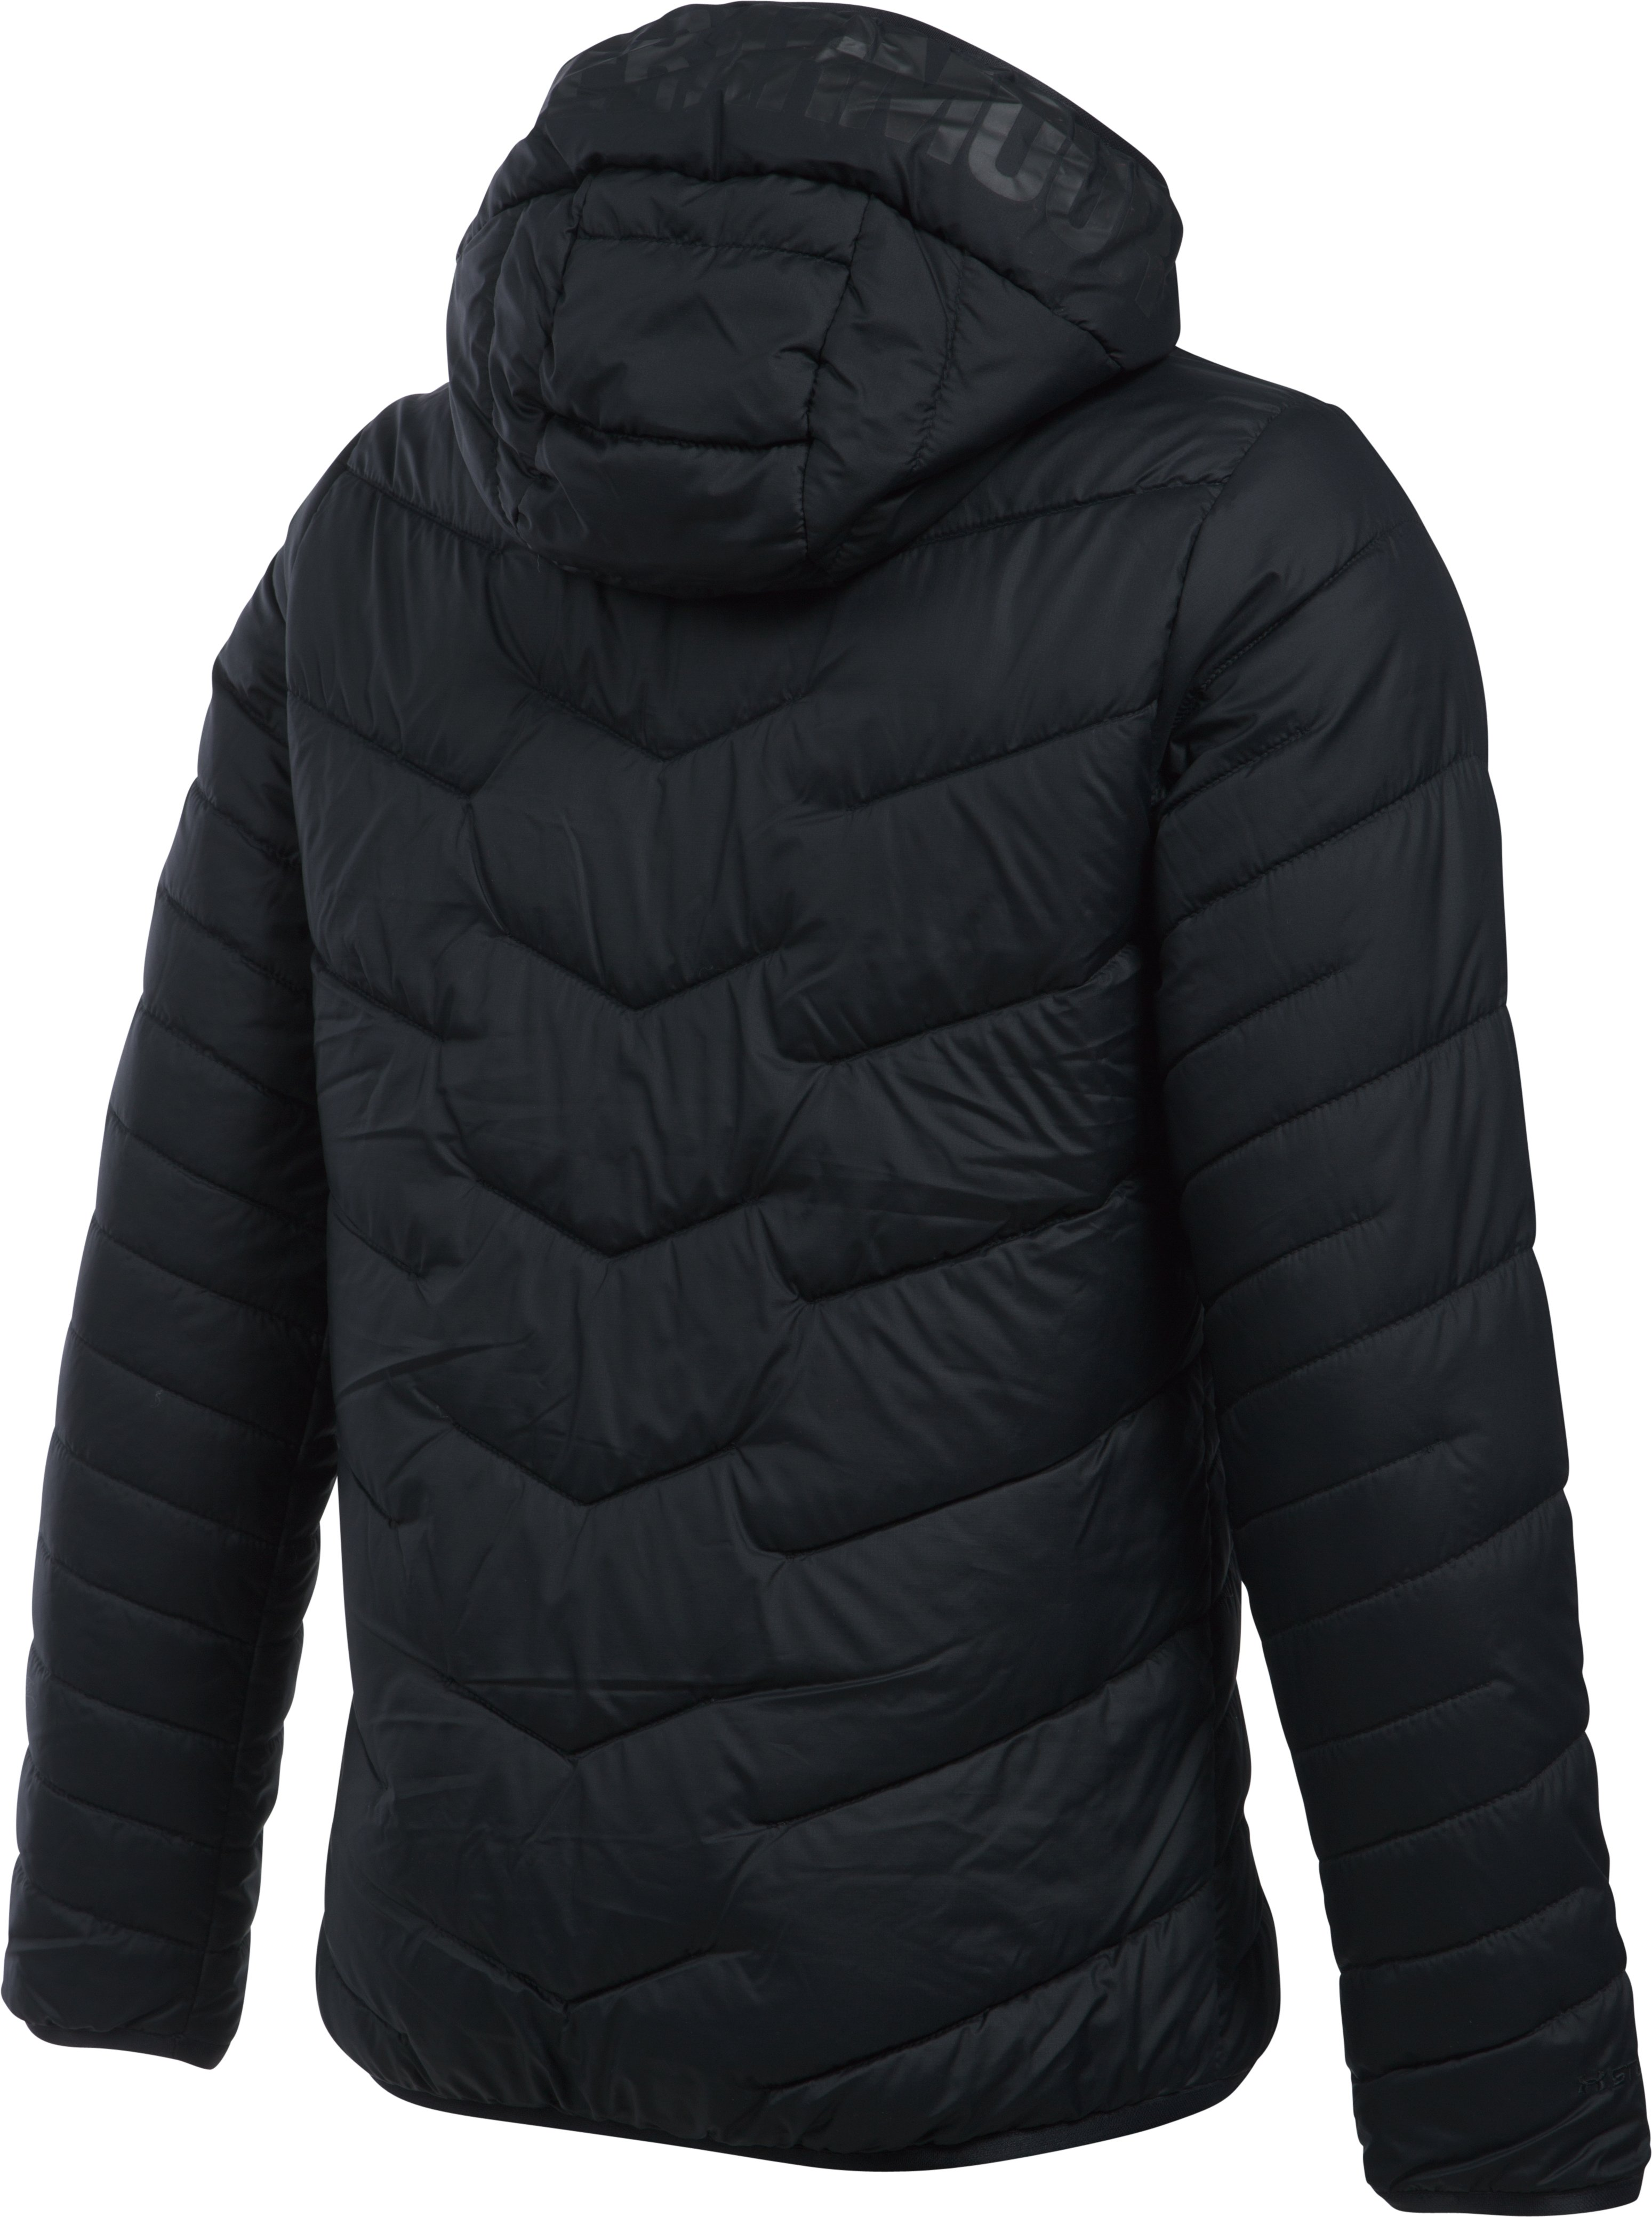 Girls' ColdGear® Reactor Hooded Jacket, Black ,